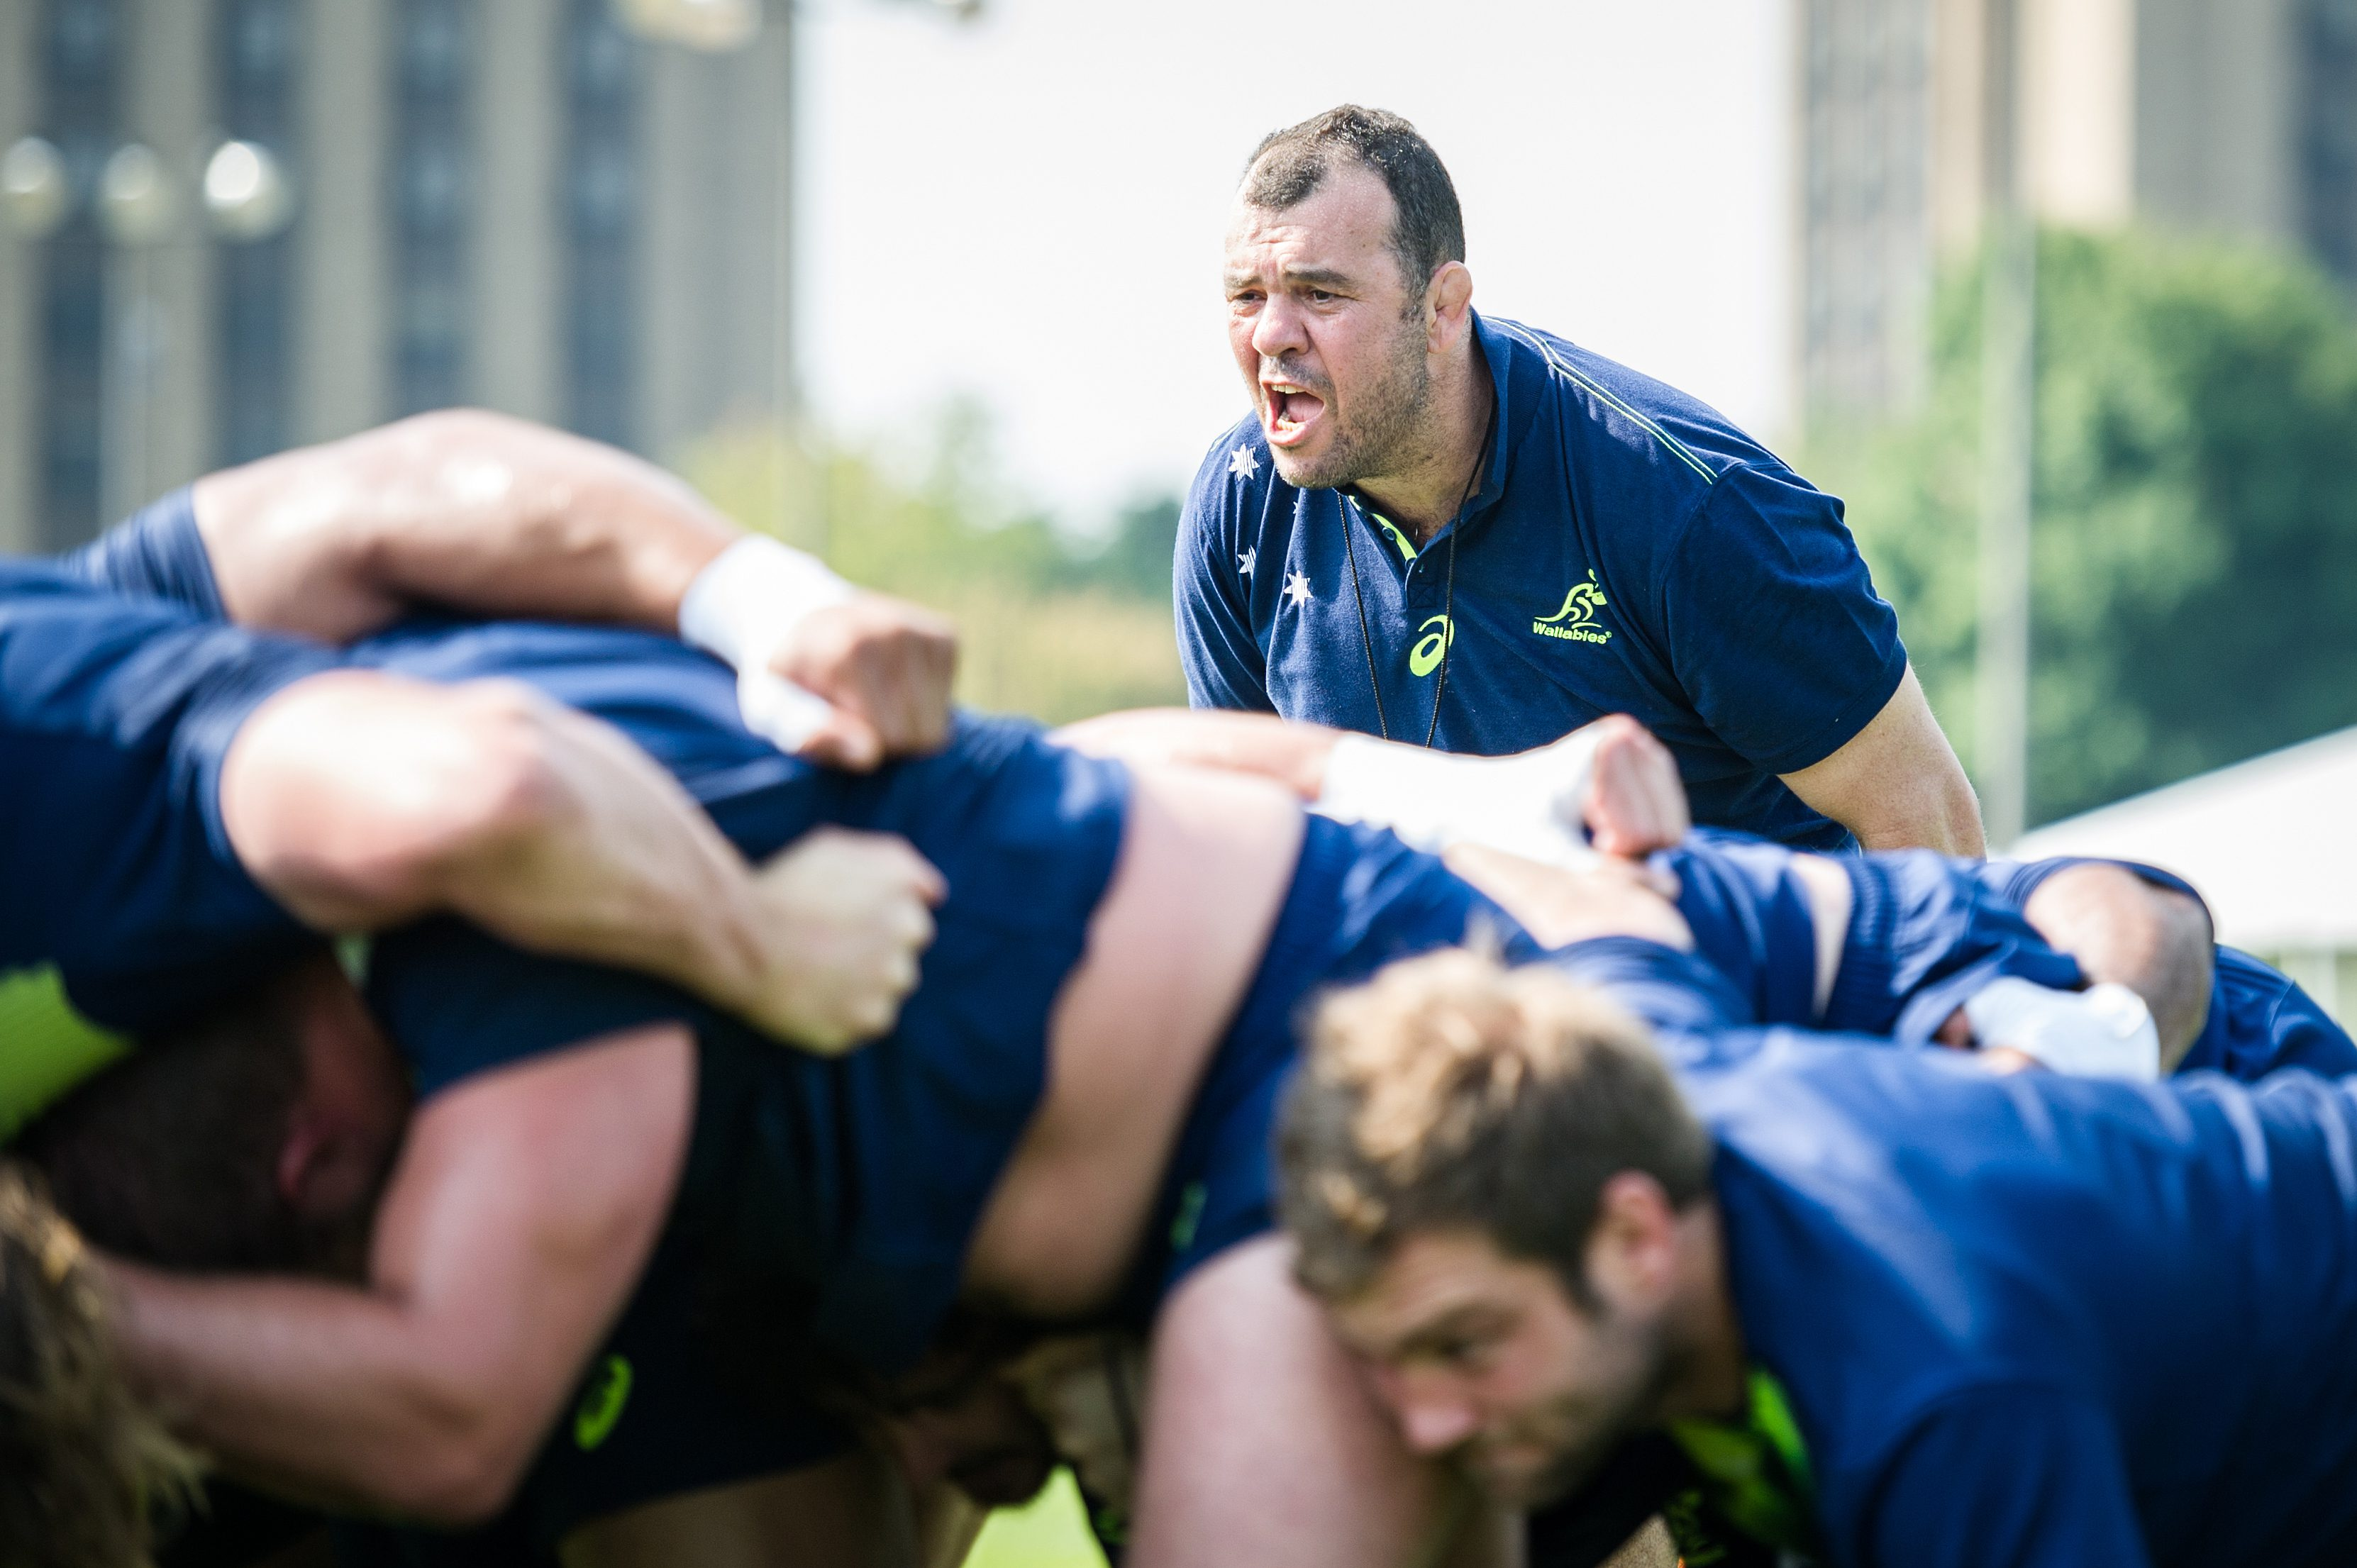 The Australian rugby union team train at the University of Notre Dame, Indiana, USA. Head coach Michael Cheika during a scrum session.